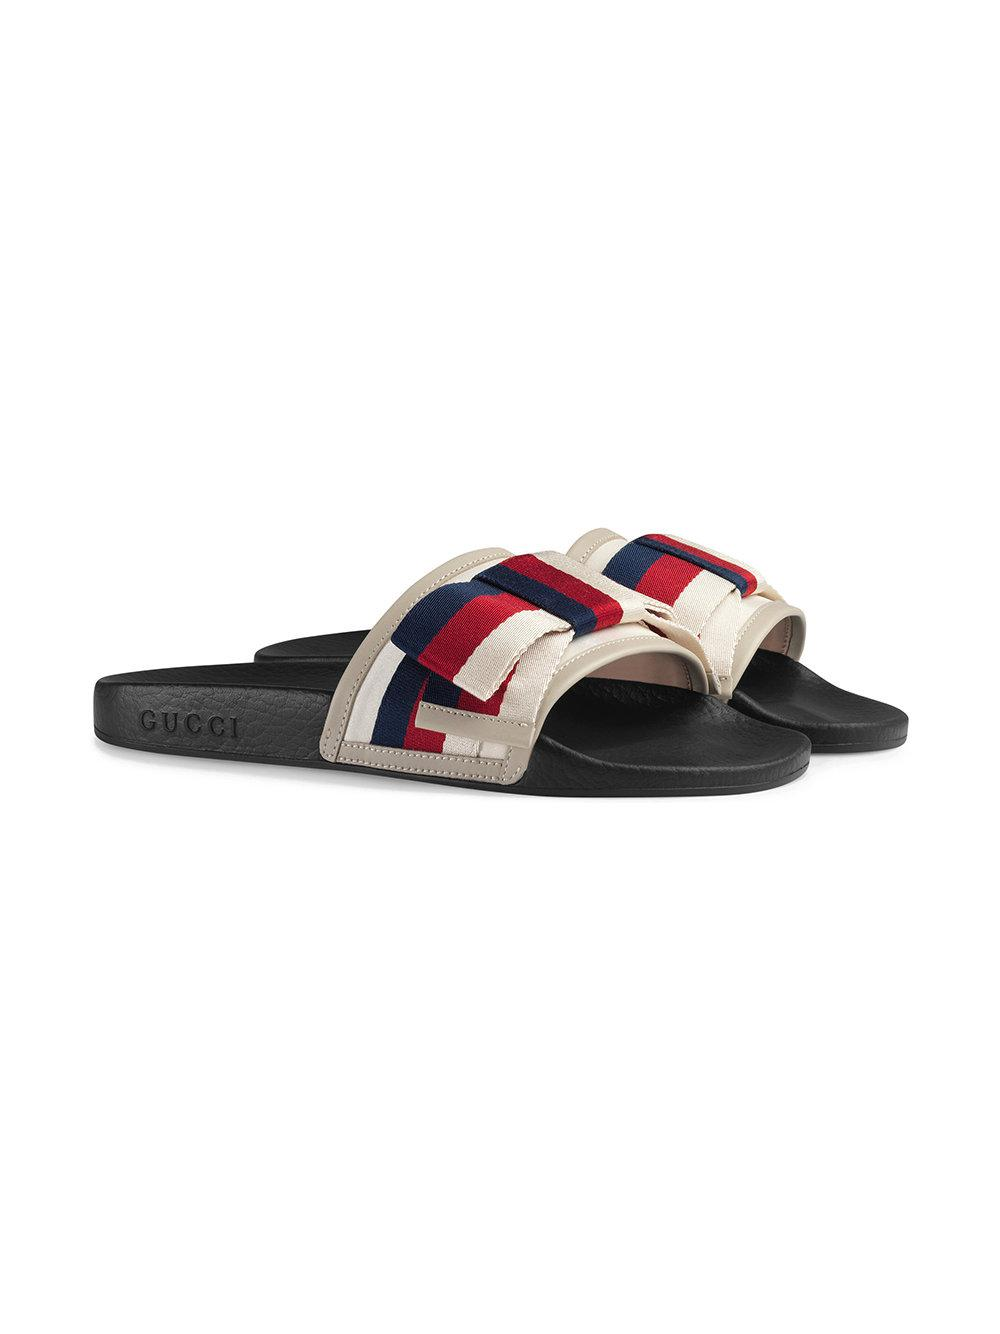 4279c92dbbd Gucci Pursuit Bow Slide Sandal in White - Save 18% - Lyst